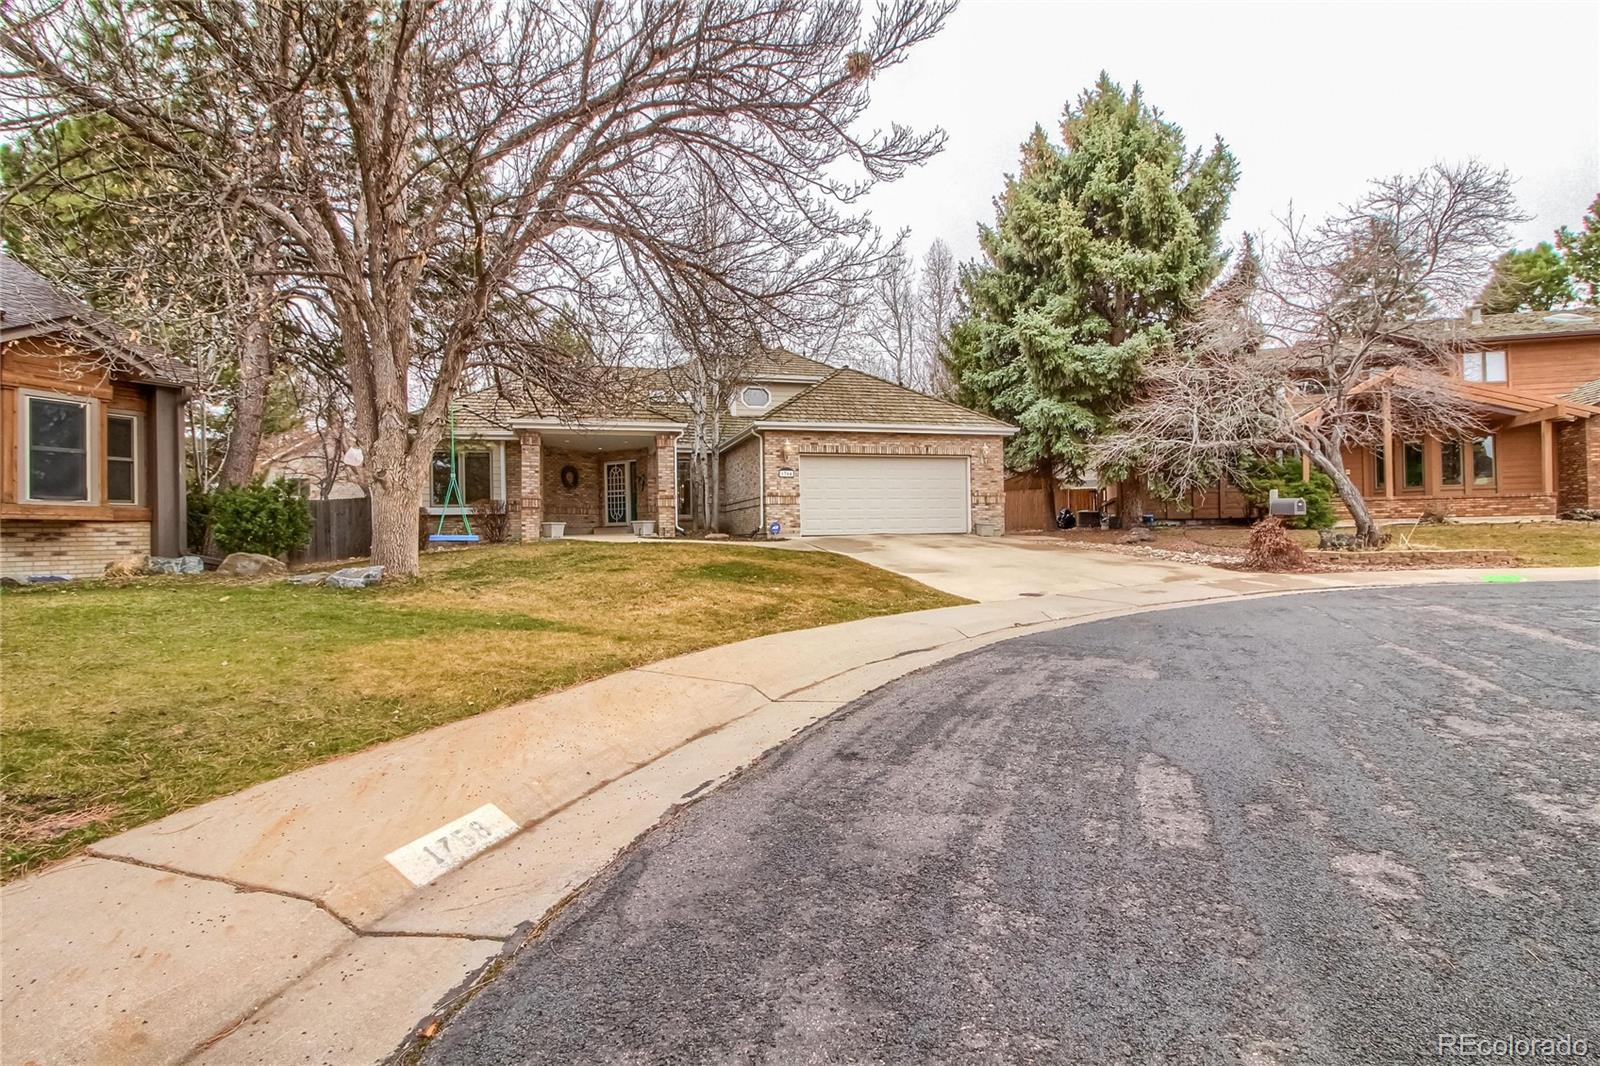 1764 W 113th Avenue Property Photo - Westminster, CO real estate listing